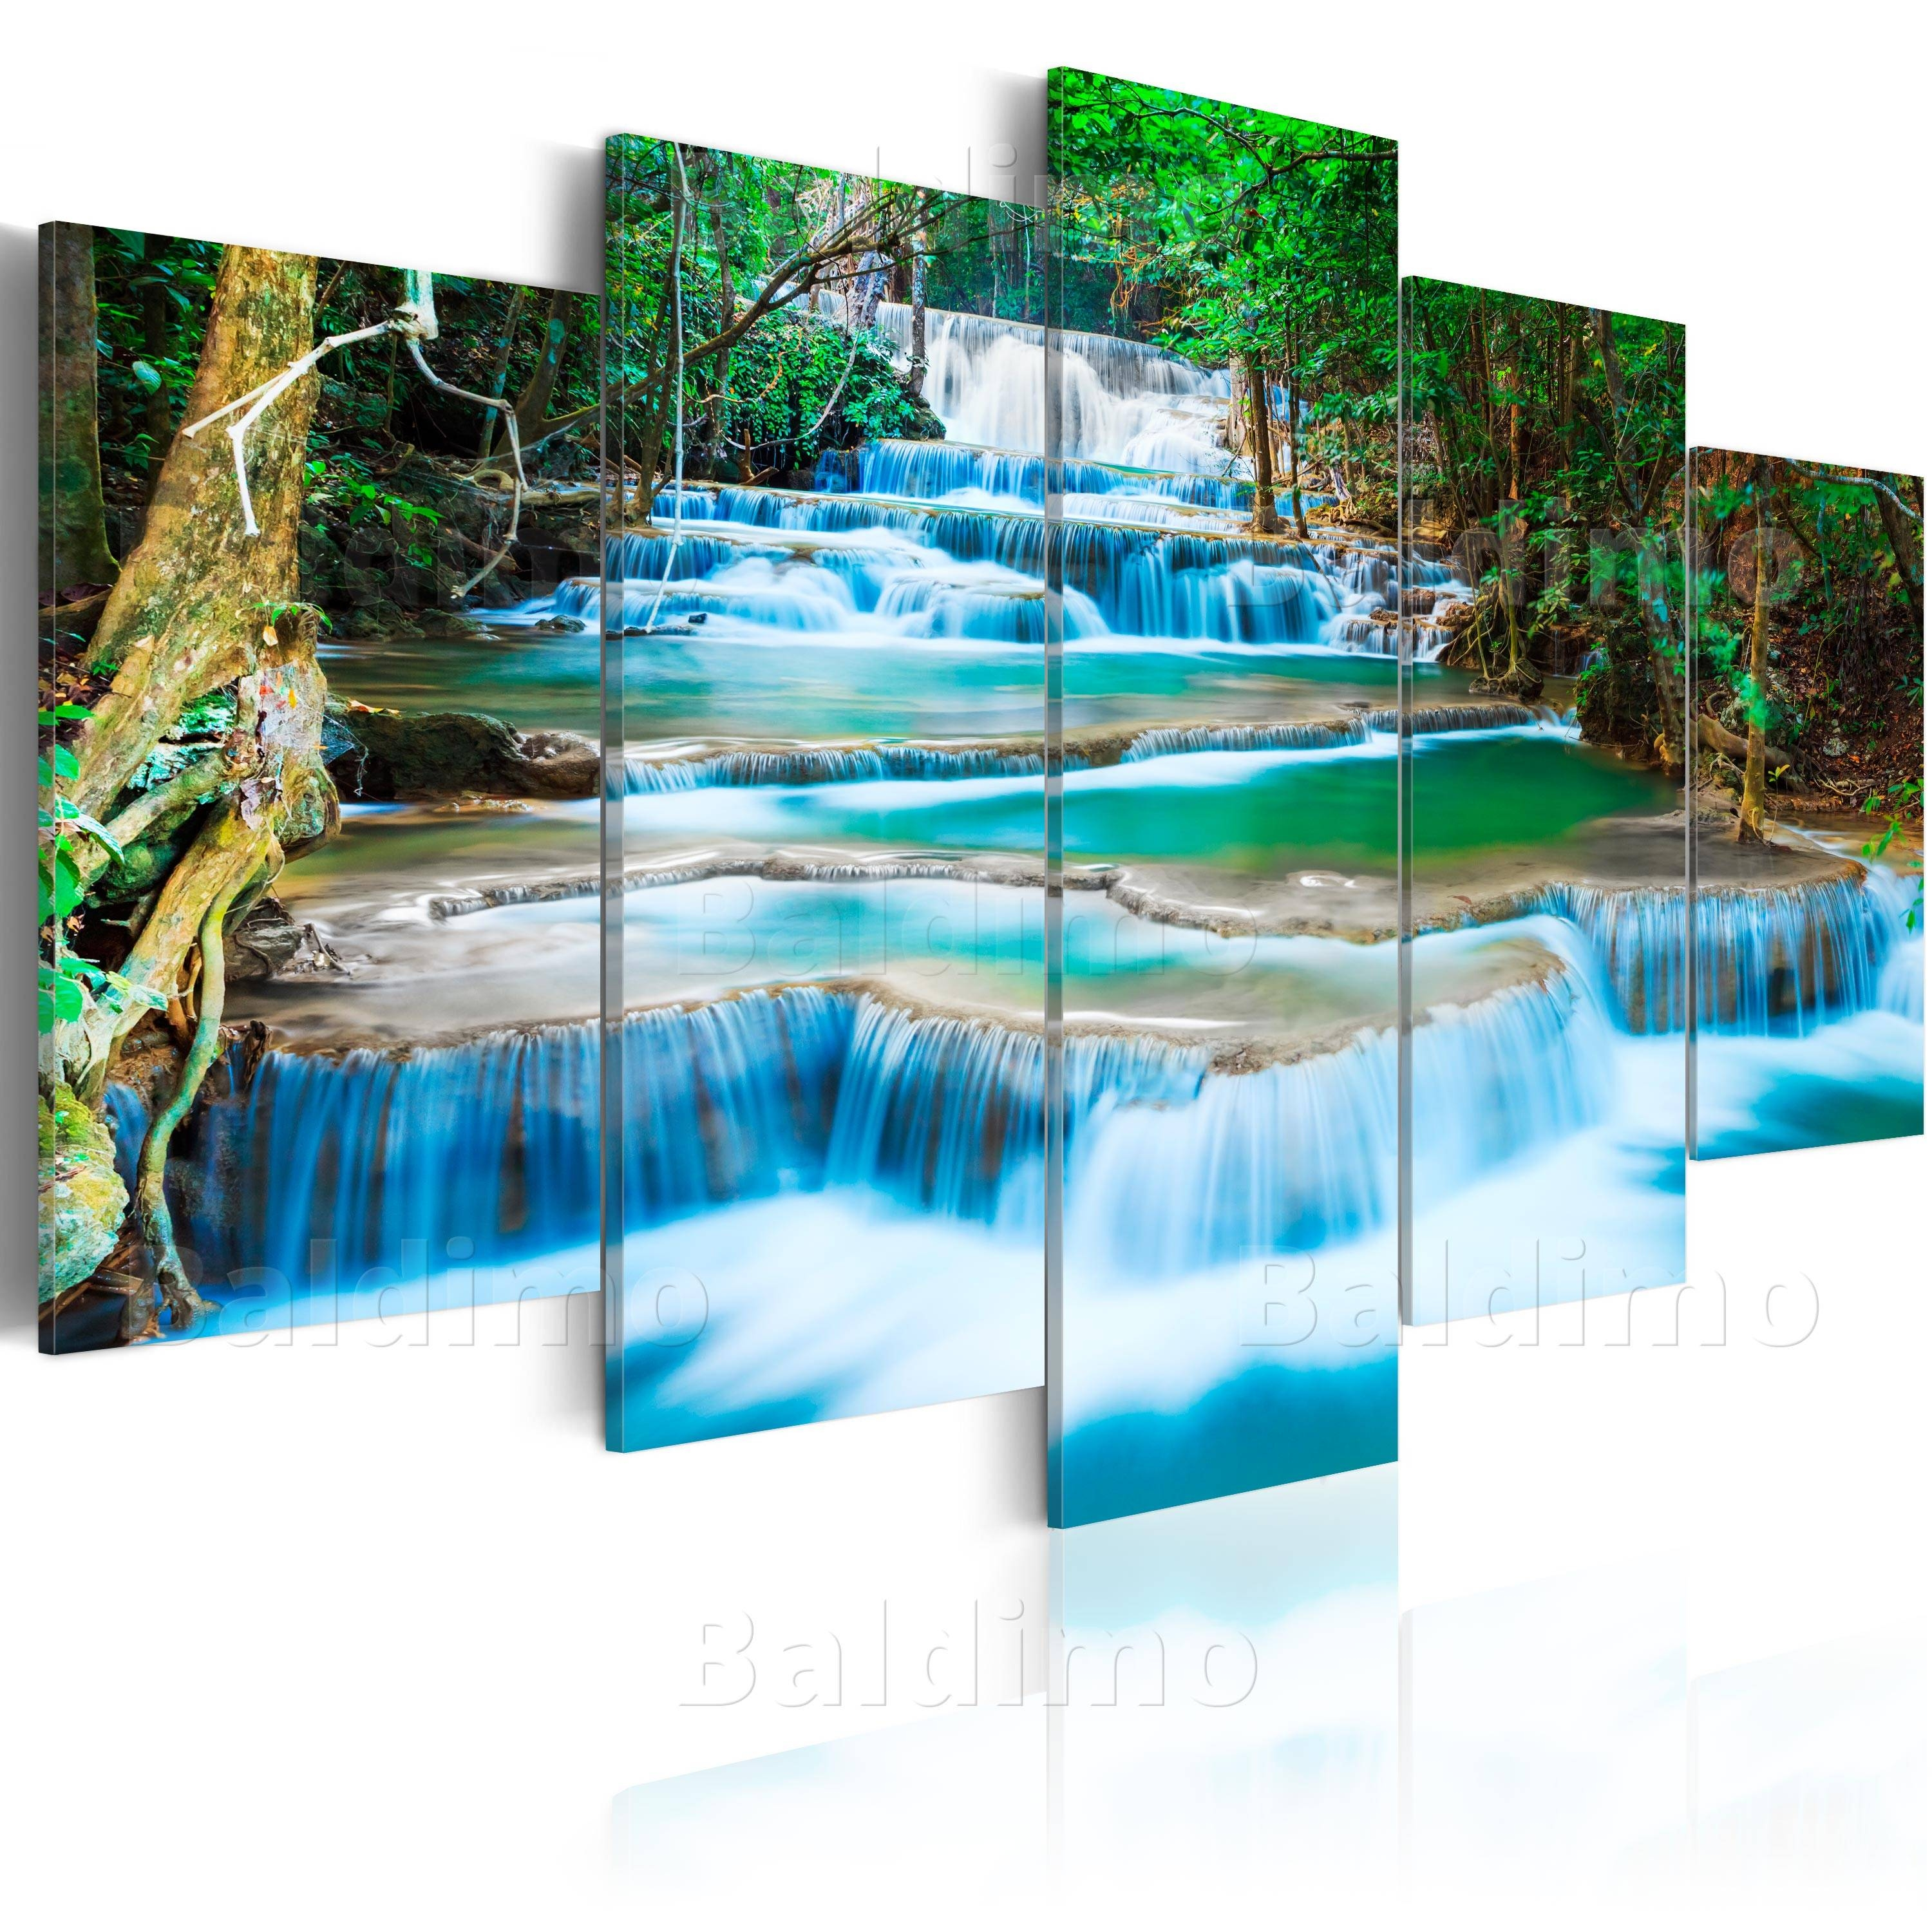 5panels Large Buddha Waterfall Art Print Picture Canvas Wall Art Within Most Up To Date Waterfall Wall Art (View 17 of 20)